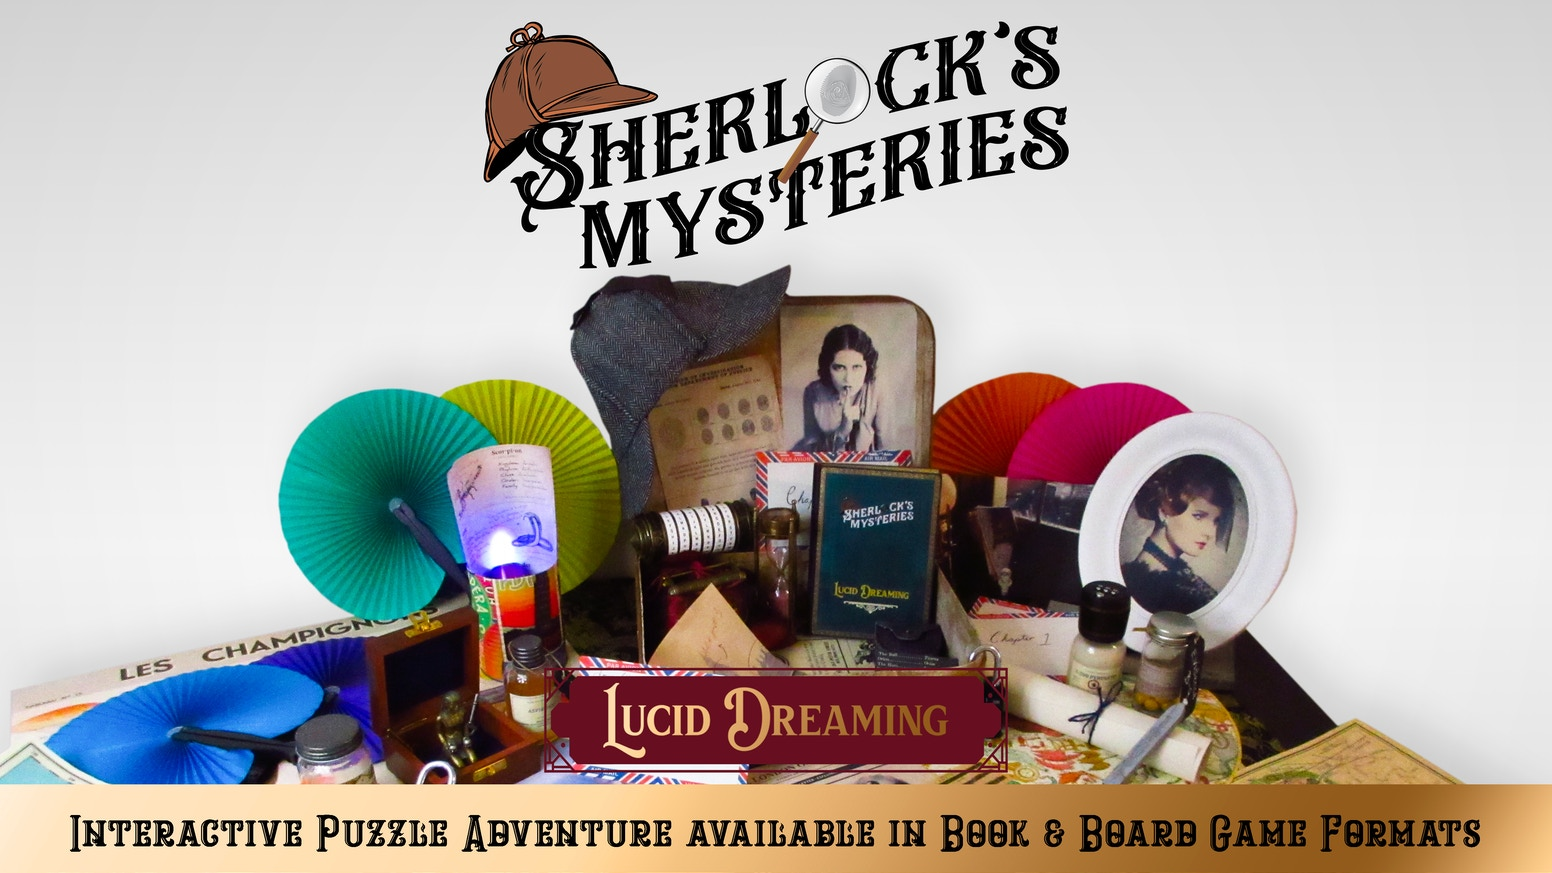 An incredibly interactive puzzle adventure that brings escape room style game play to both Book & Tabletop game formats.